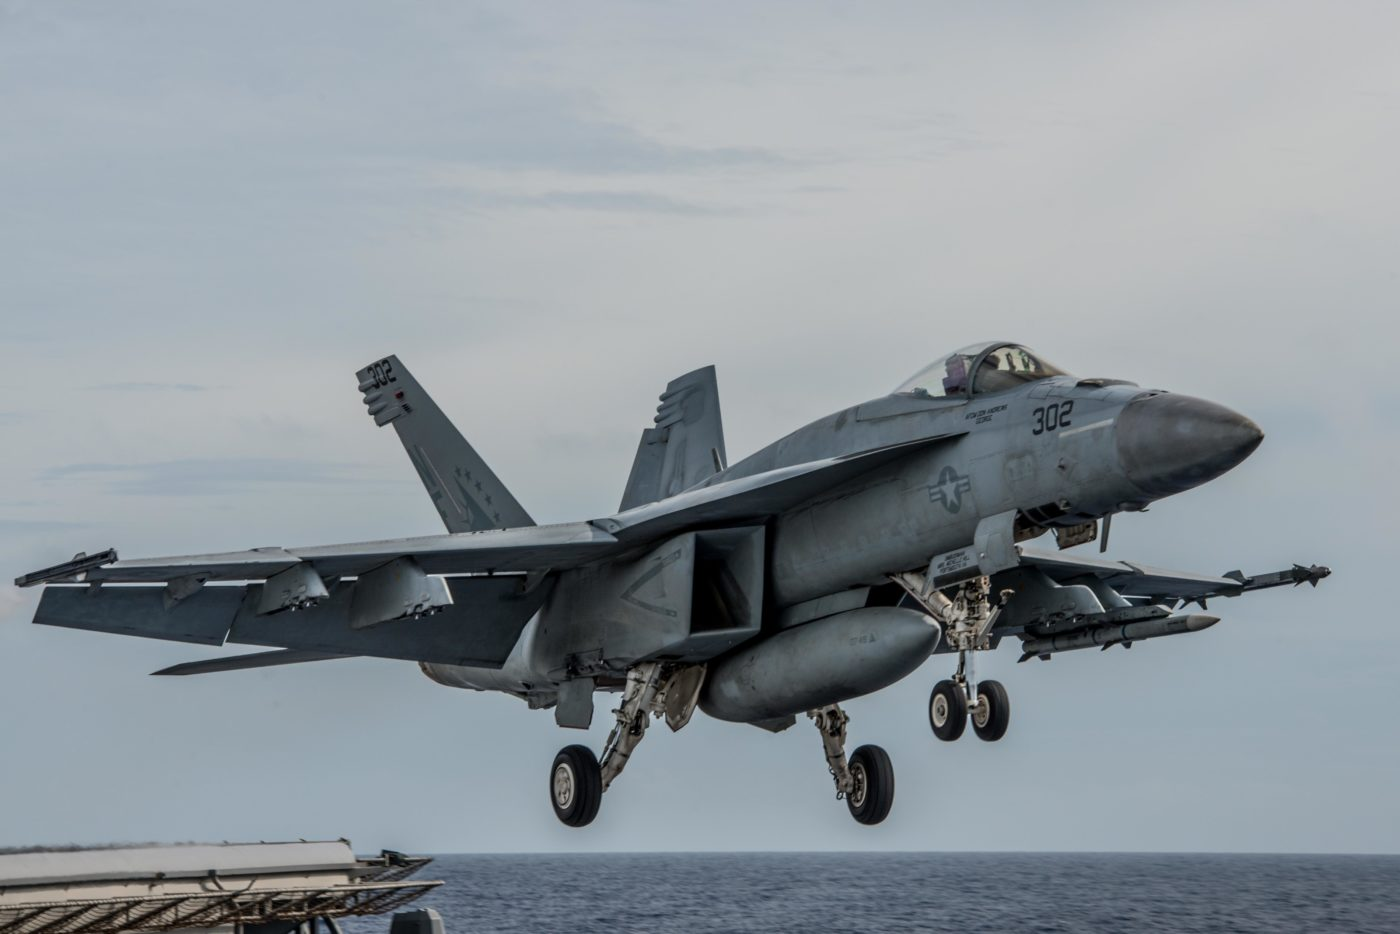 An F/A-18E Super Hornet launches from the flight deck of the aircraft carrier USS Ronald Reagan in 2016.